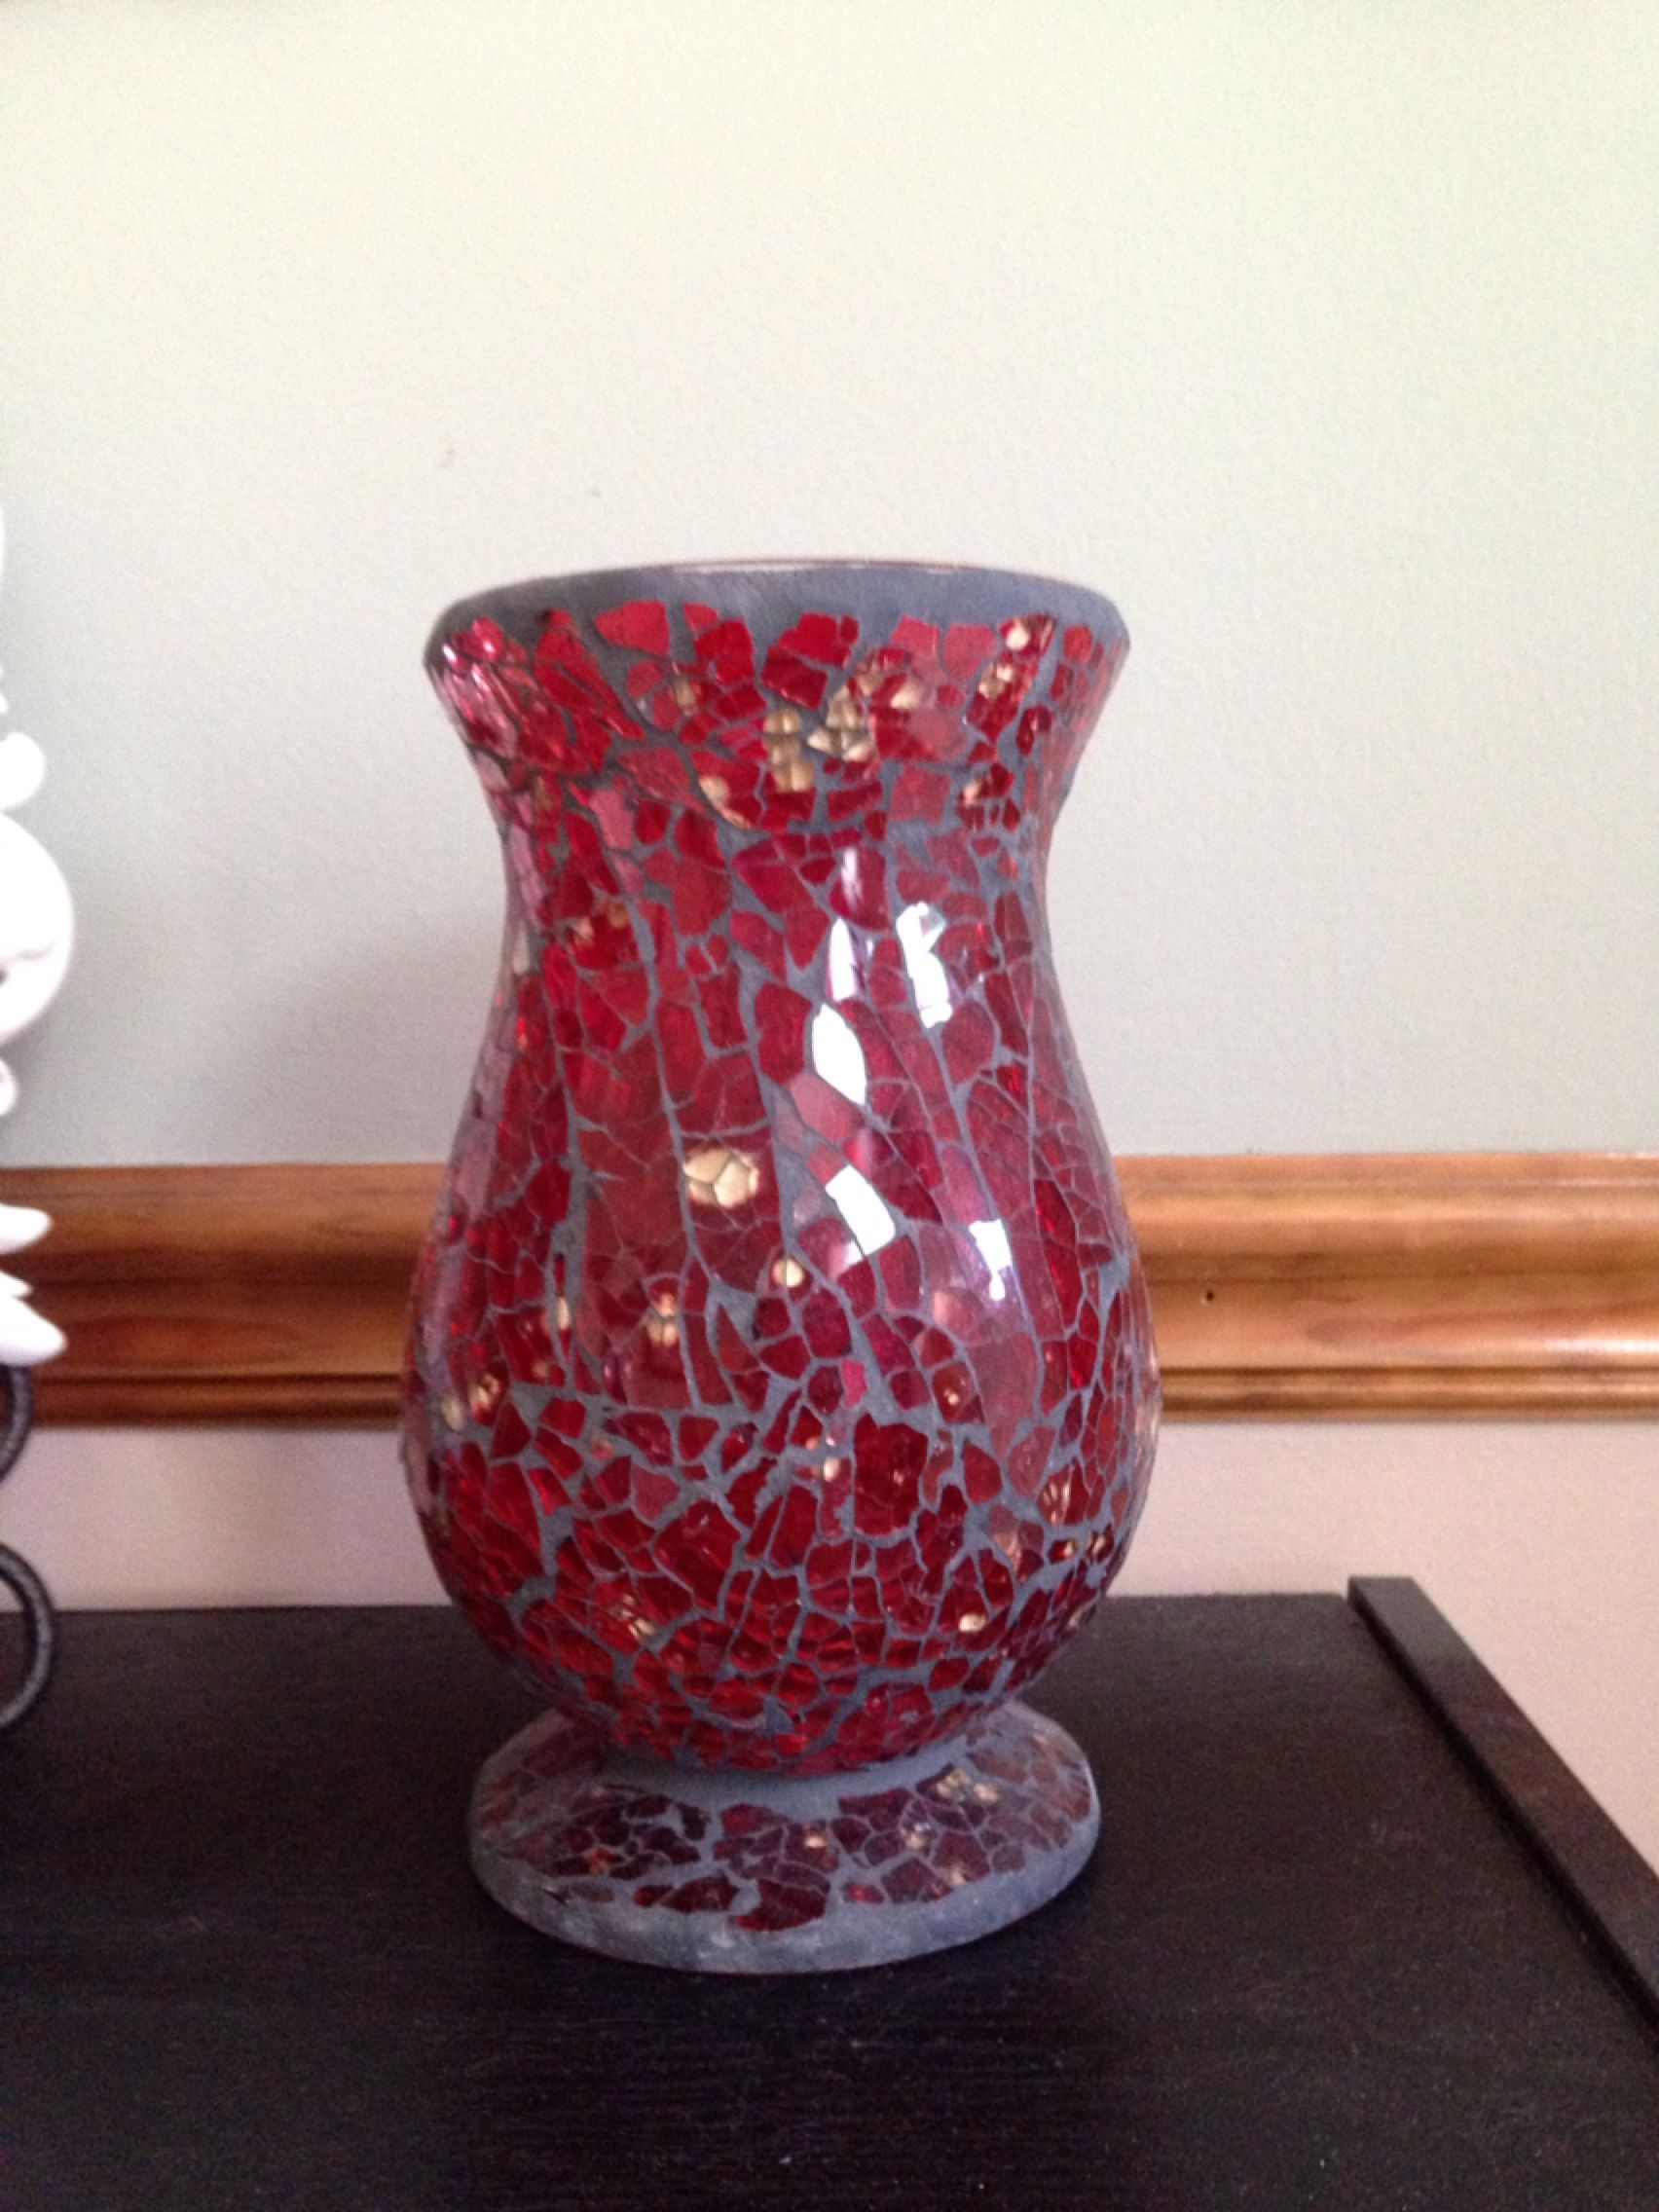 Super Best Red Glass Mosaic Vase/candle Holder for sale in Lee's Summit  IR27